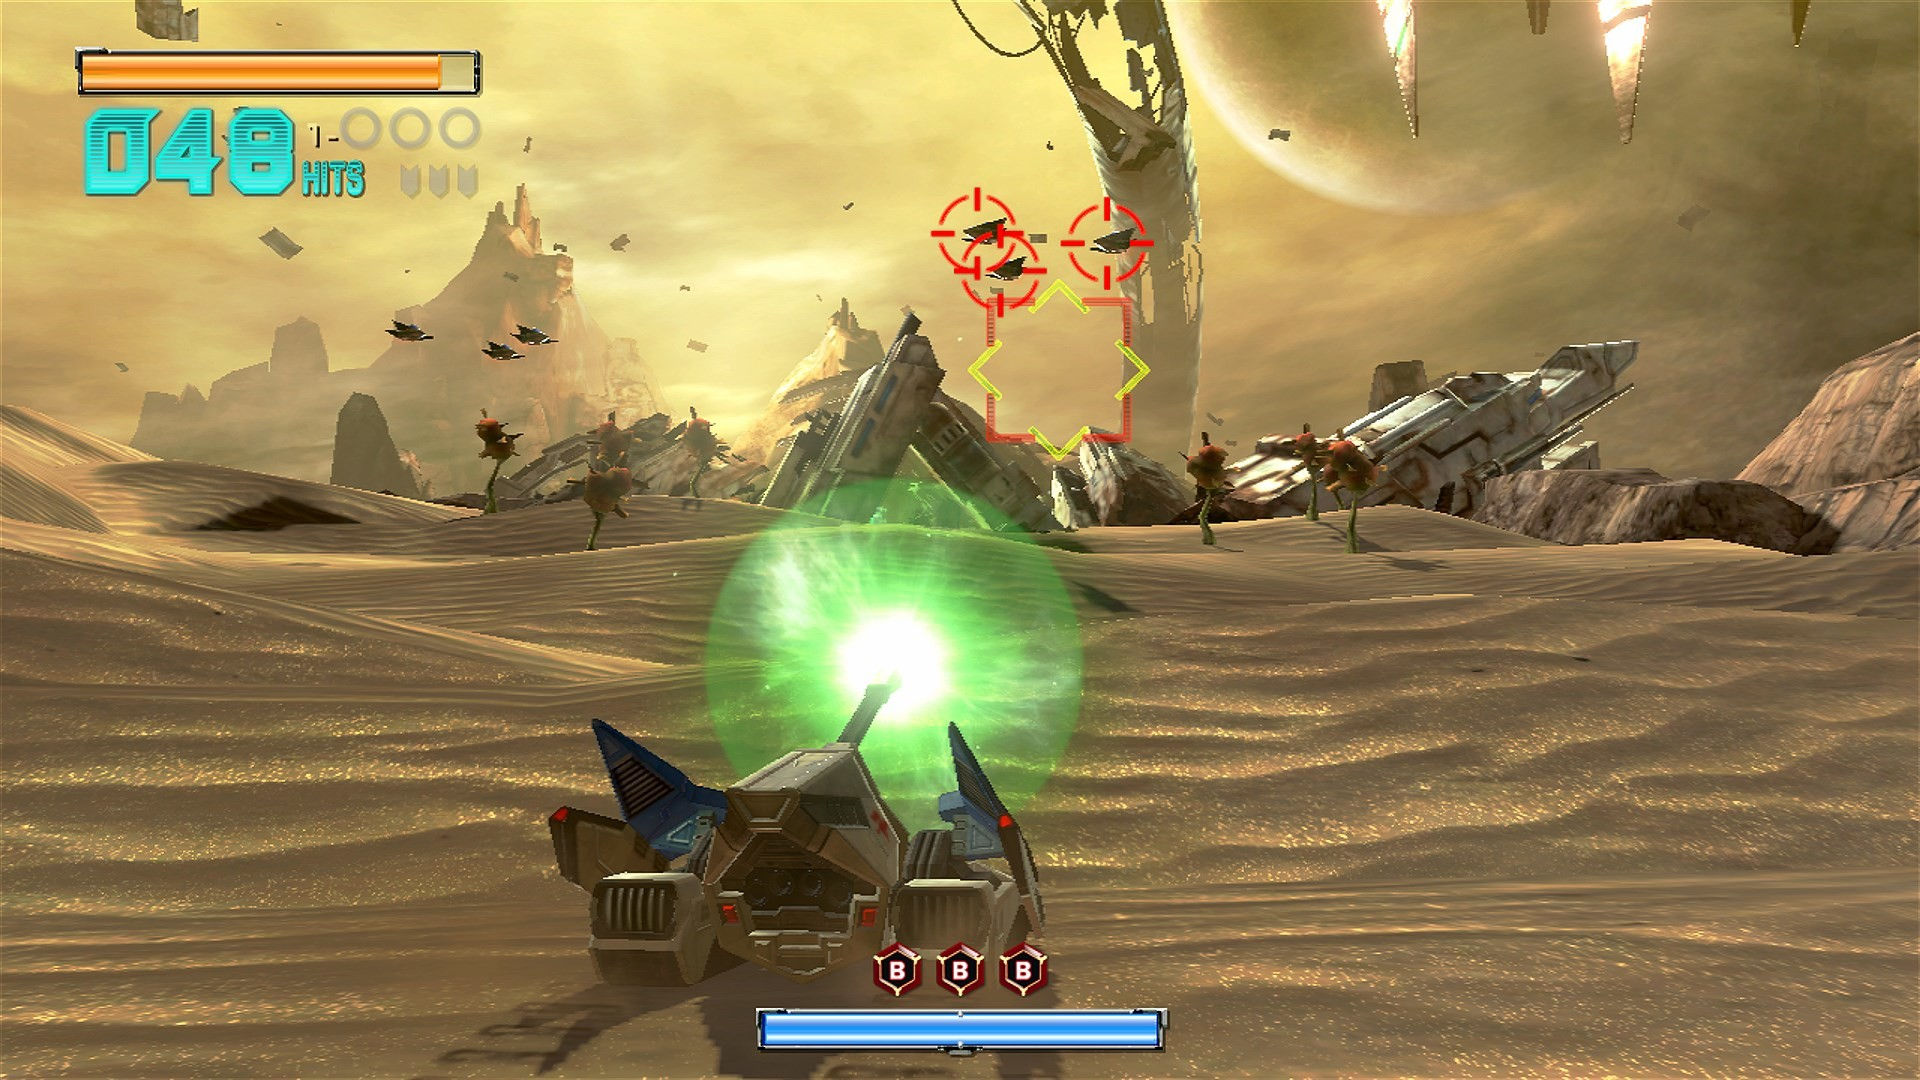 The new Star Fox has great ideas and terrible controls